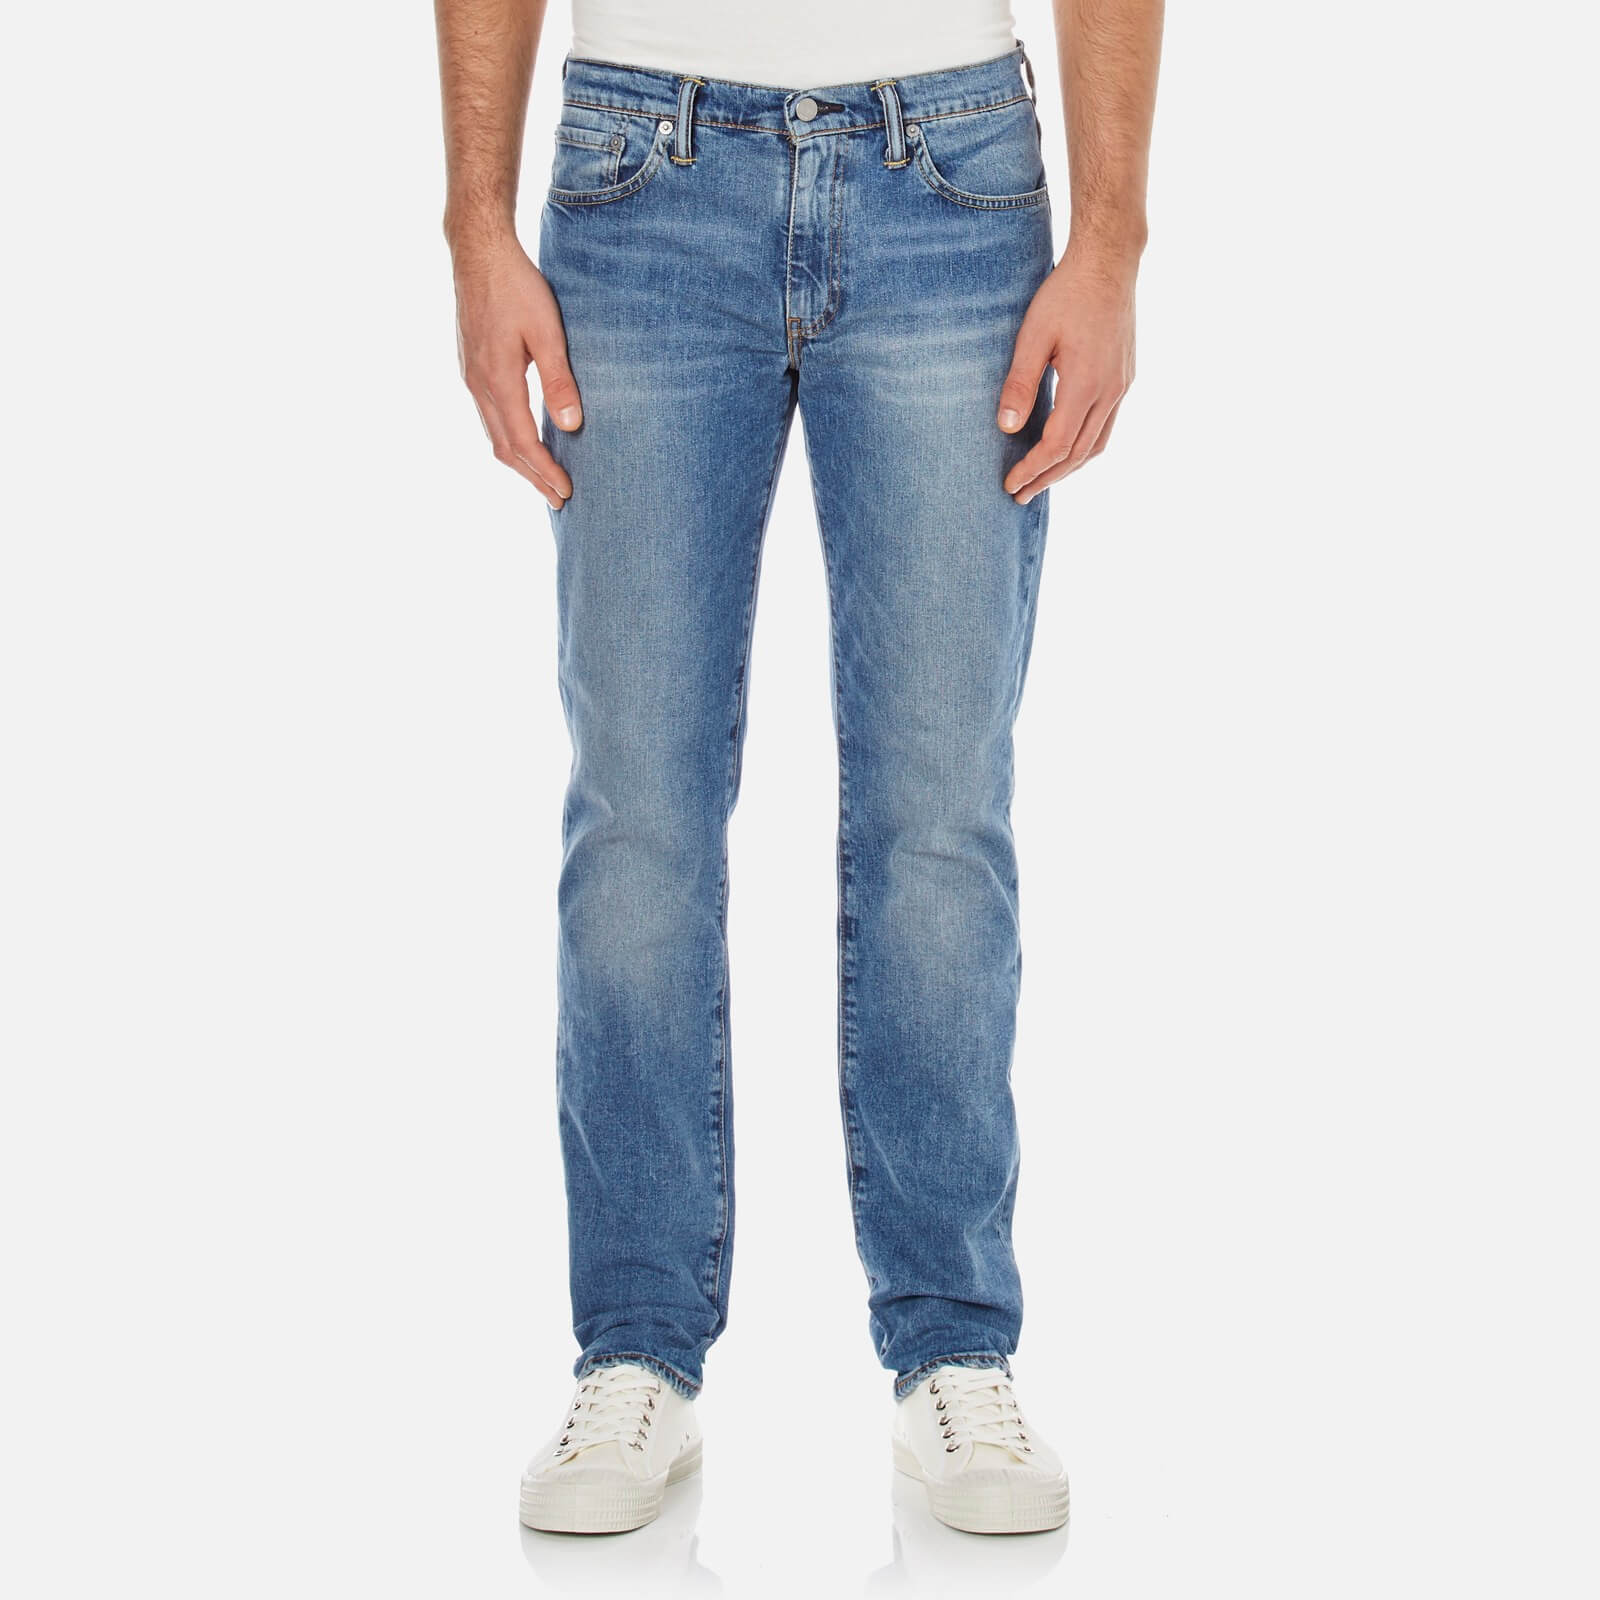 4b14af2120d Levi s Men s 511 Slim Fit Jeans - Harbour Mens Clothing